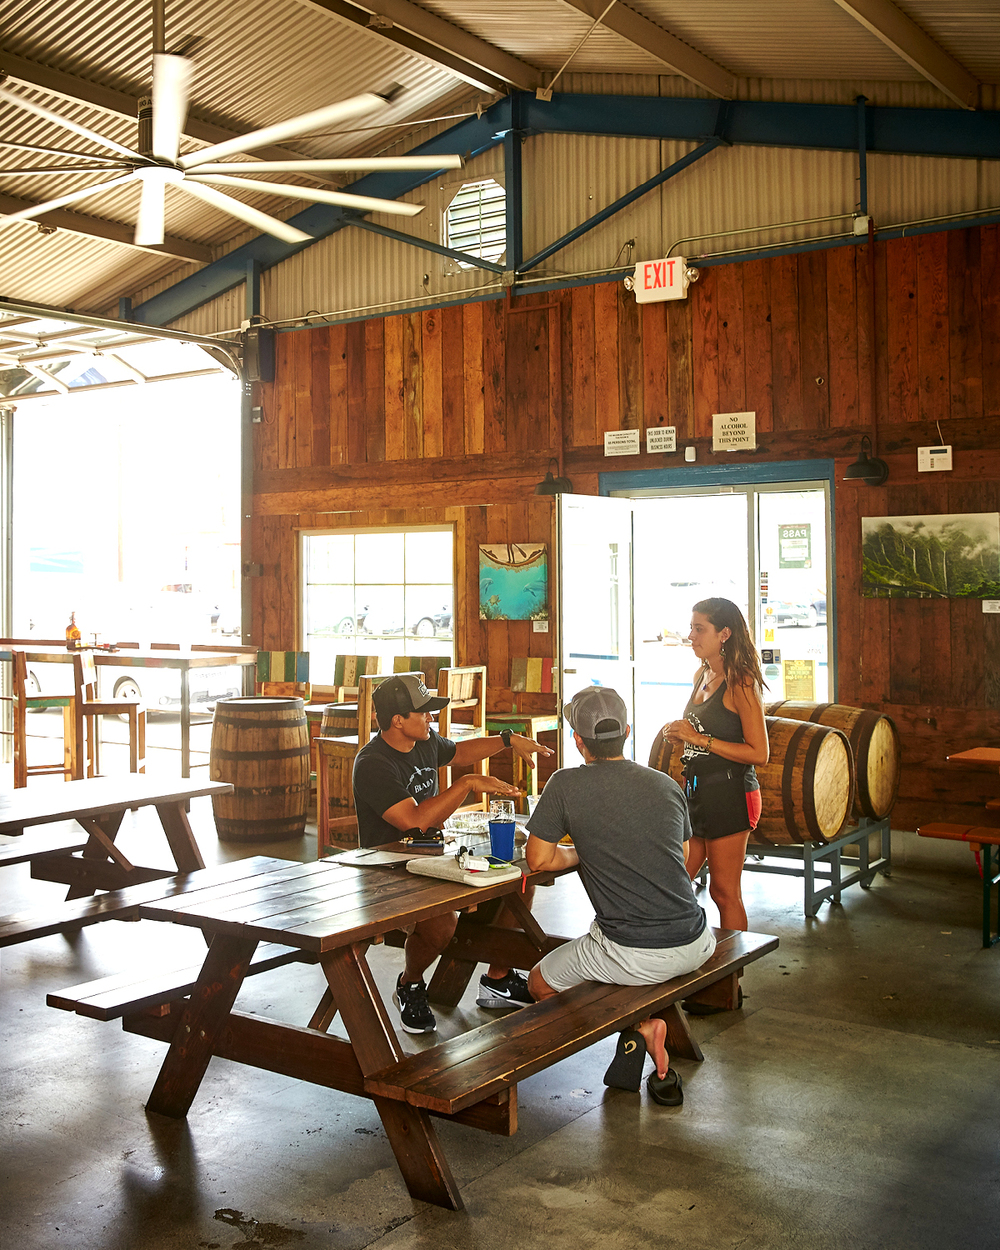 SURFERS TAKING LUNCH AT HONOLULU BEERWORKS